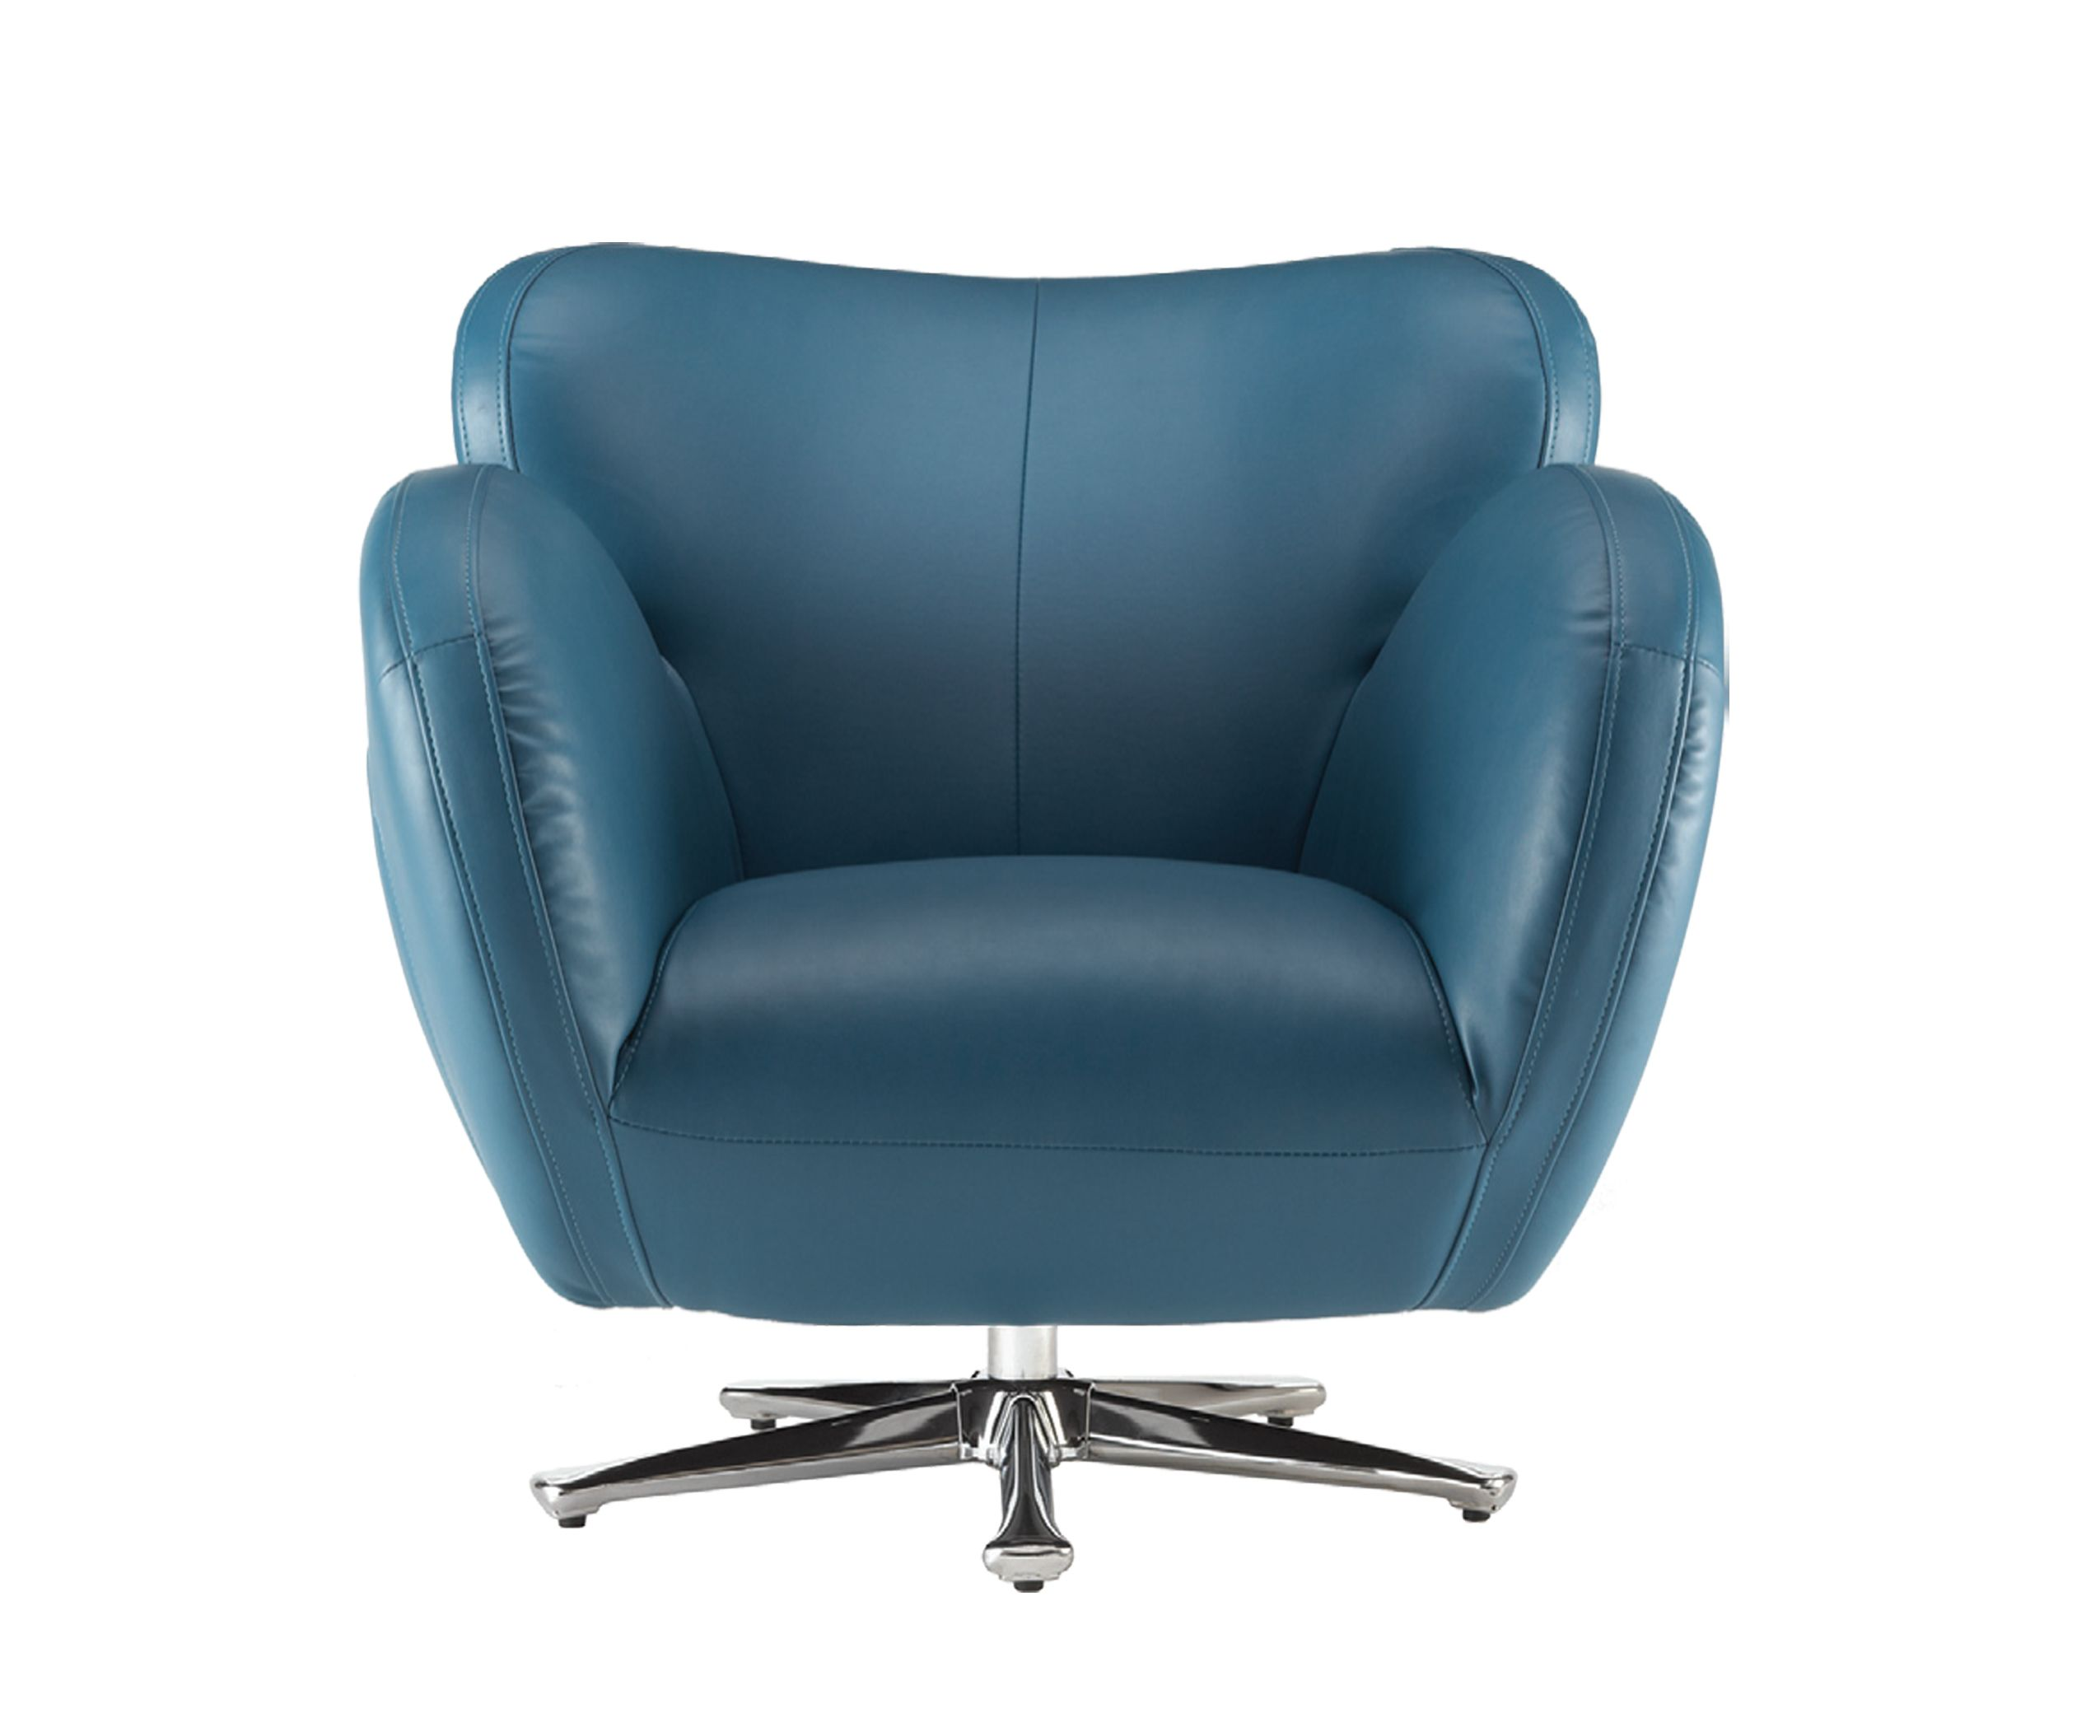 Bomba swivel chair in turquoise bonded leather